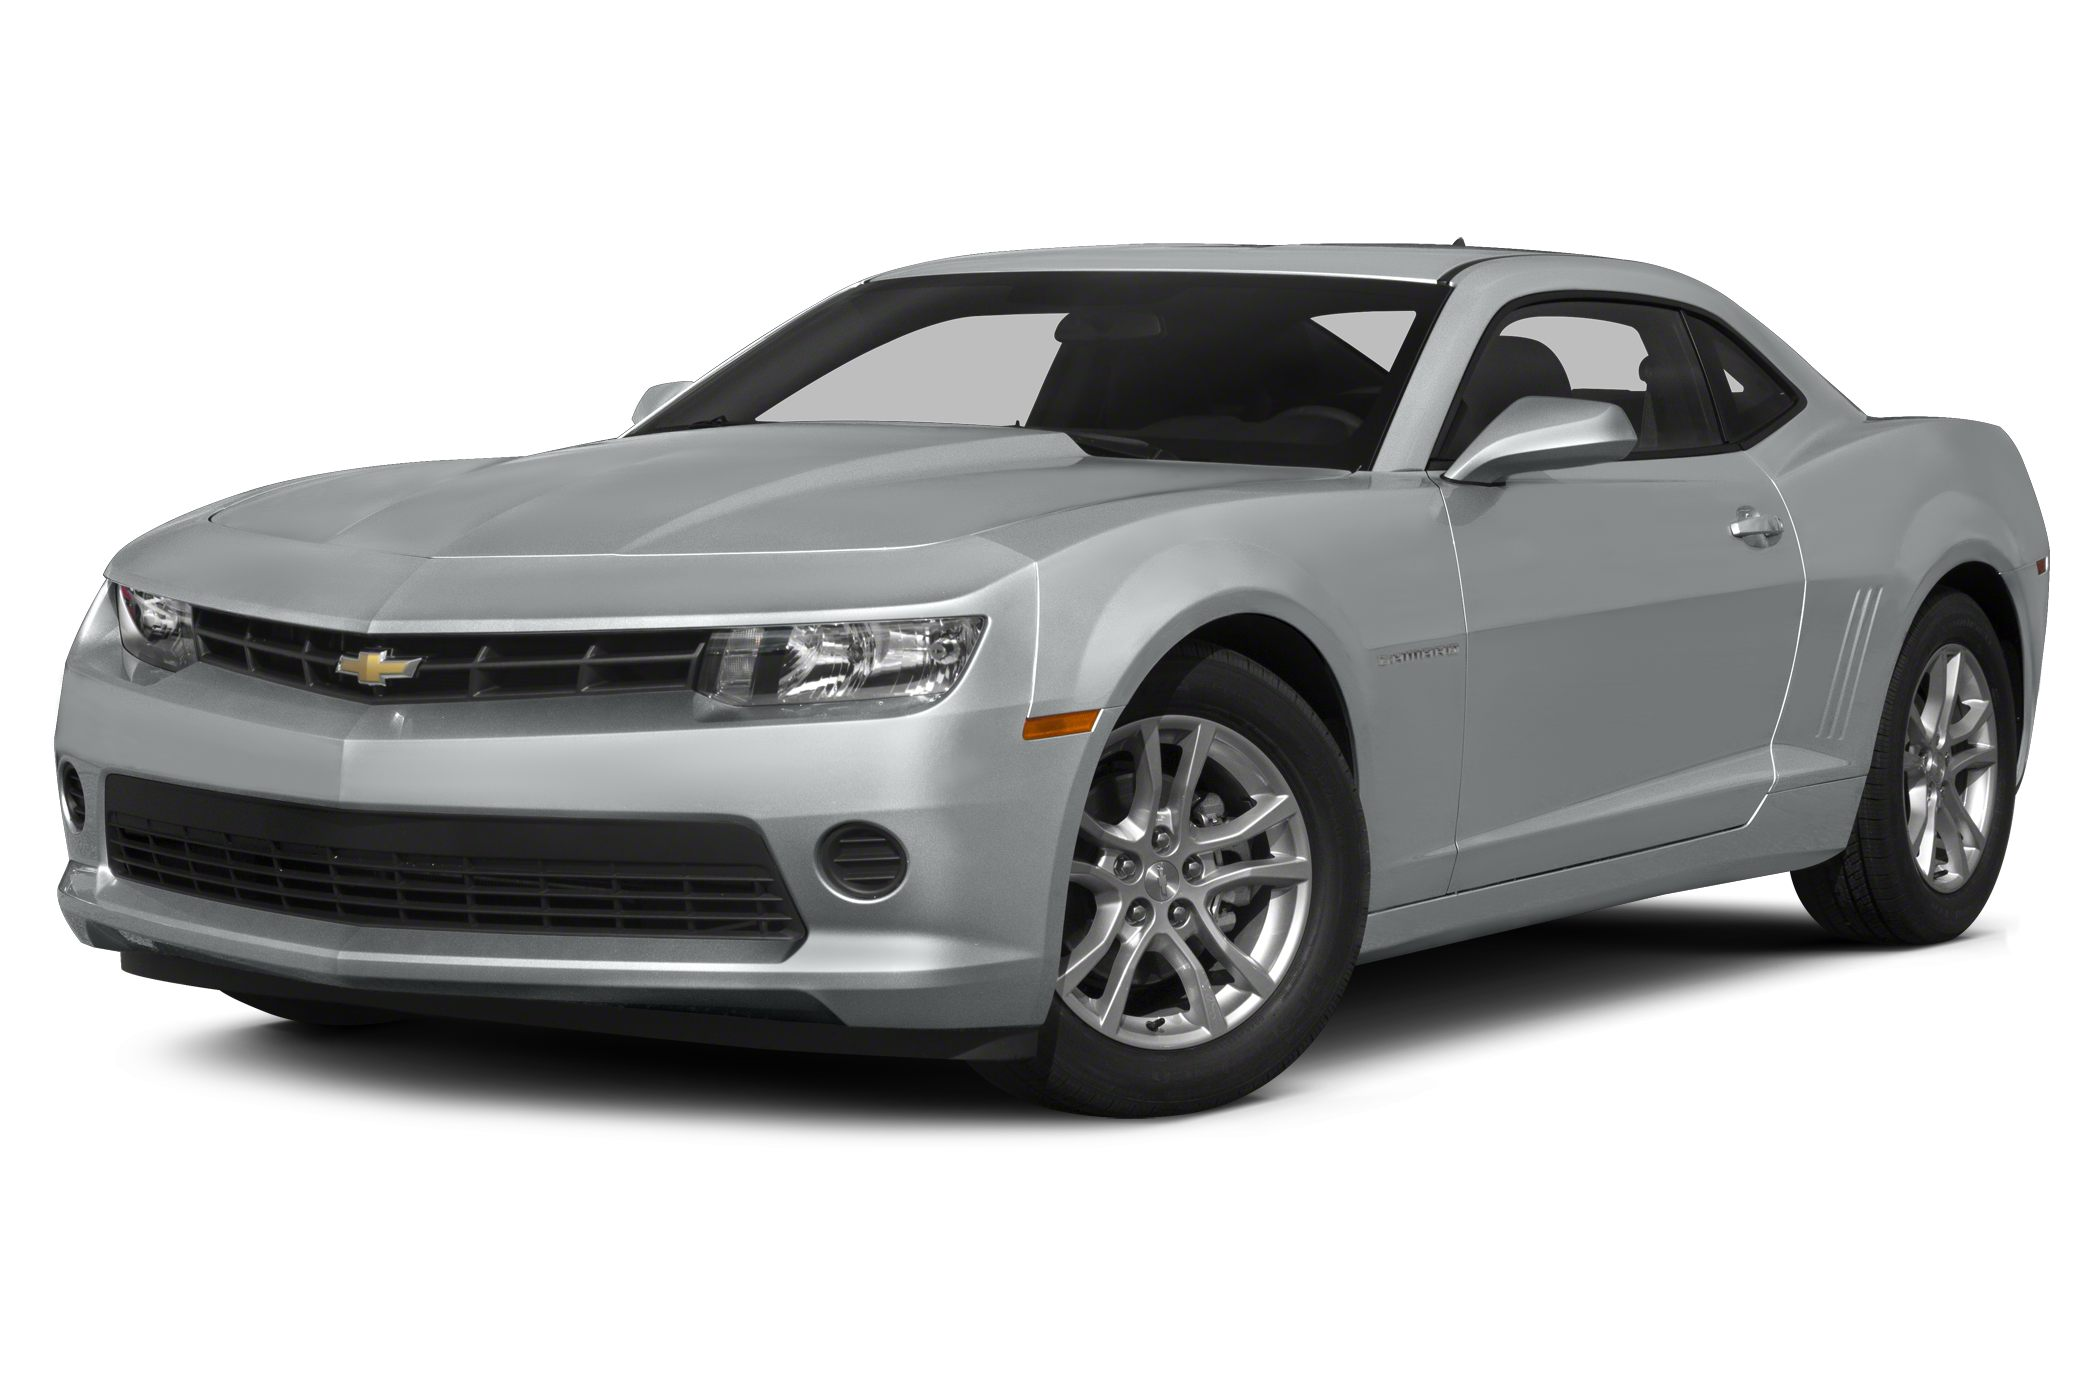 2014 Chevrolet Camaro 1LT Coupe for sale in Franklin for $31,255 with 0 miles.